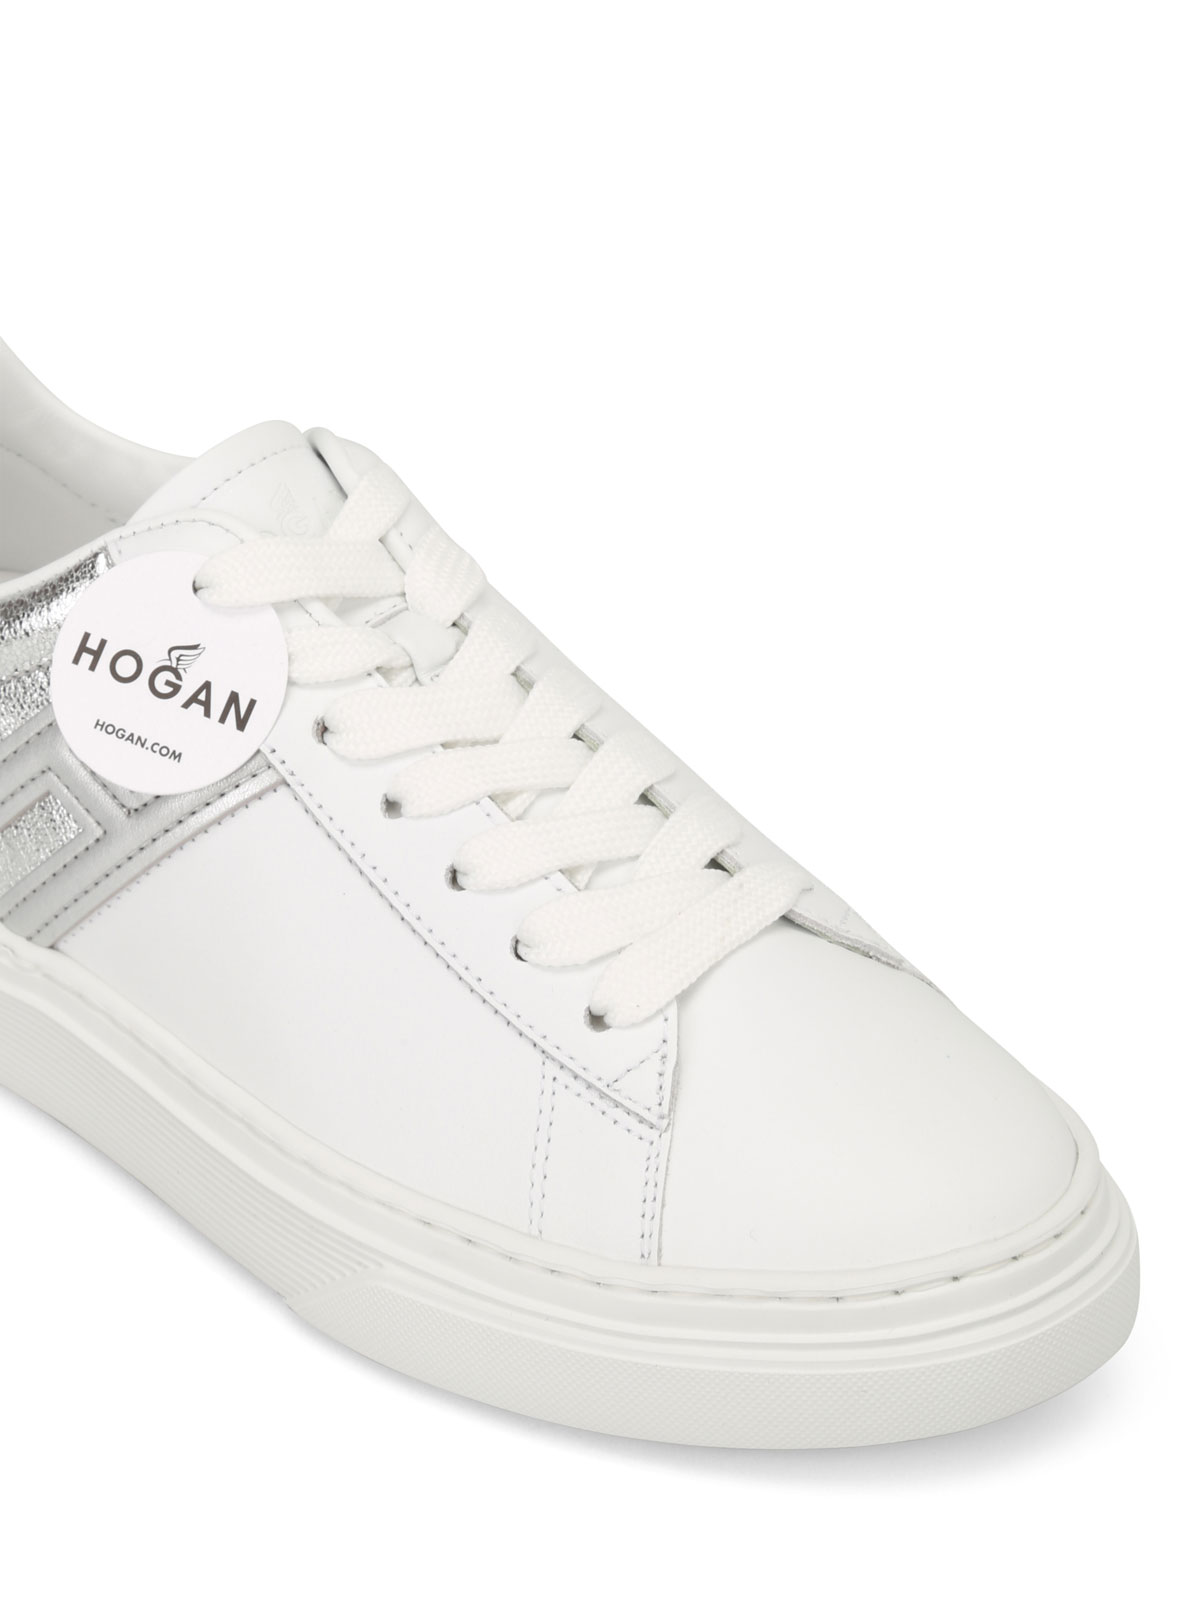 Hogan H365 Low Top White Leather Sneakers Trainers Hxw3650j970iii0351